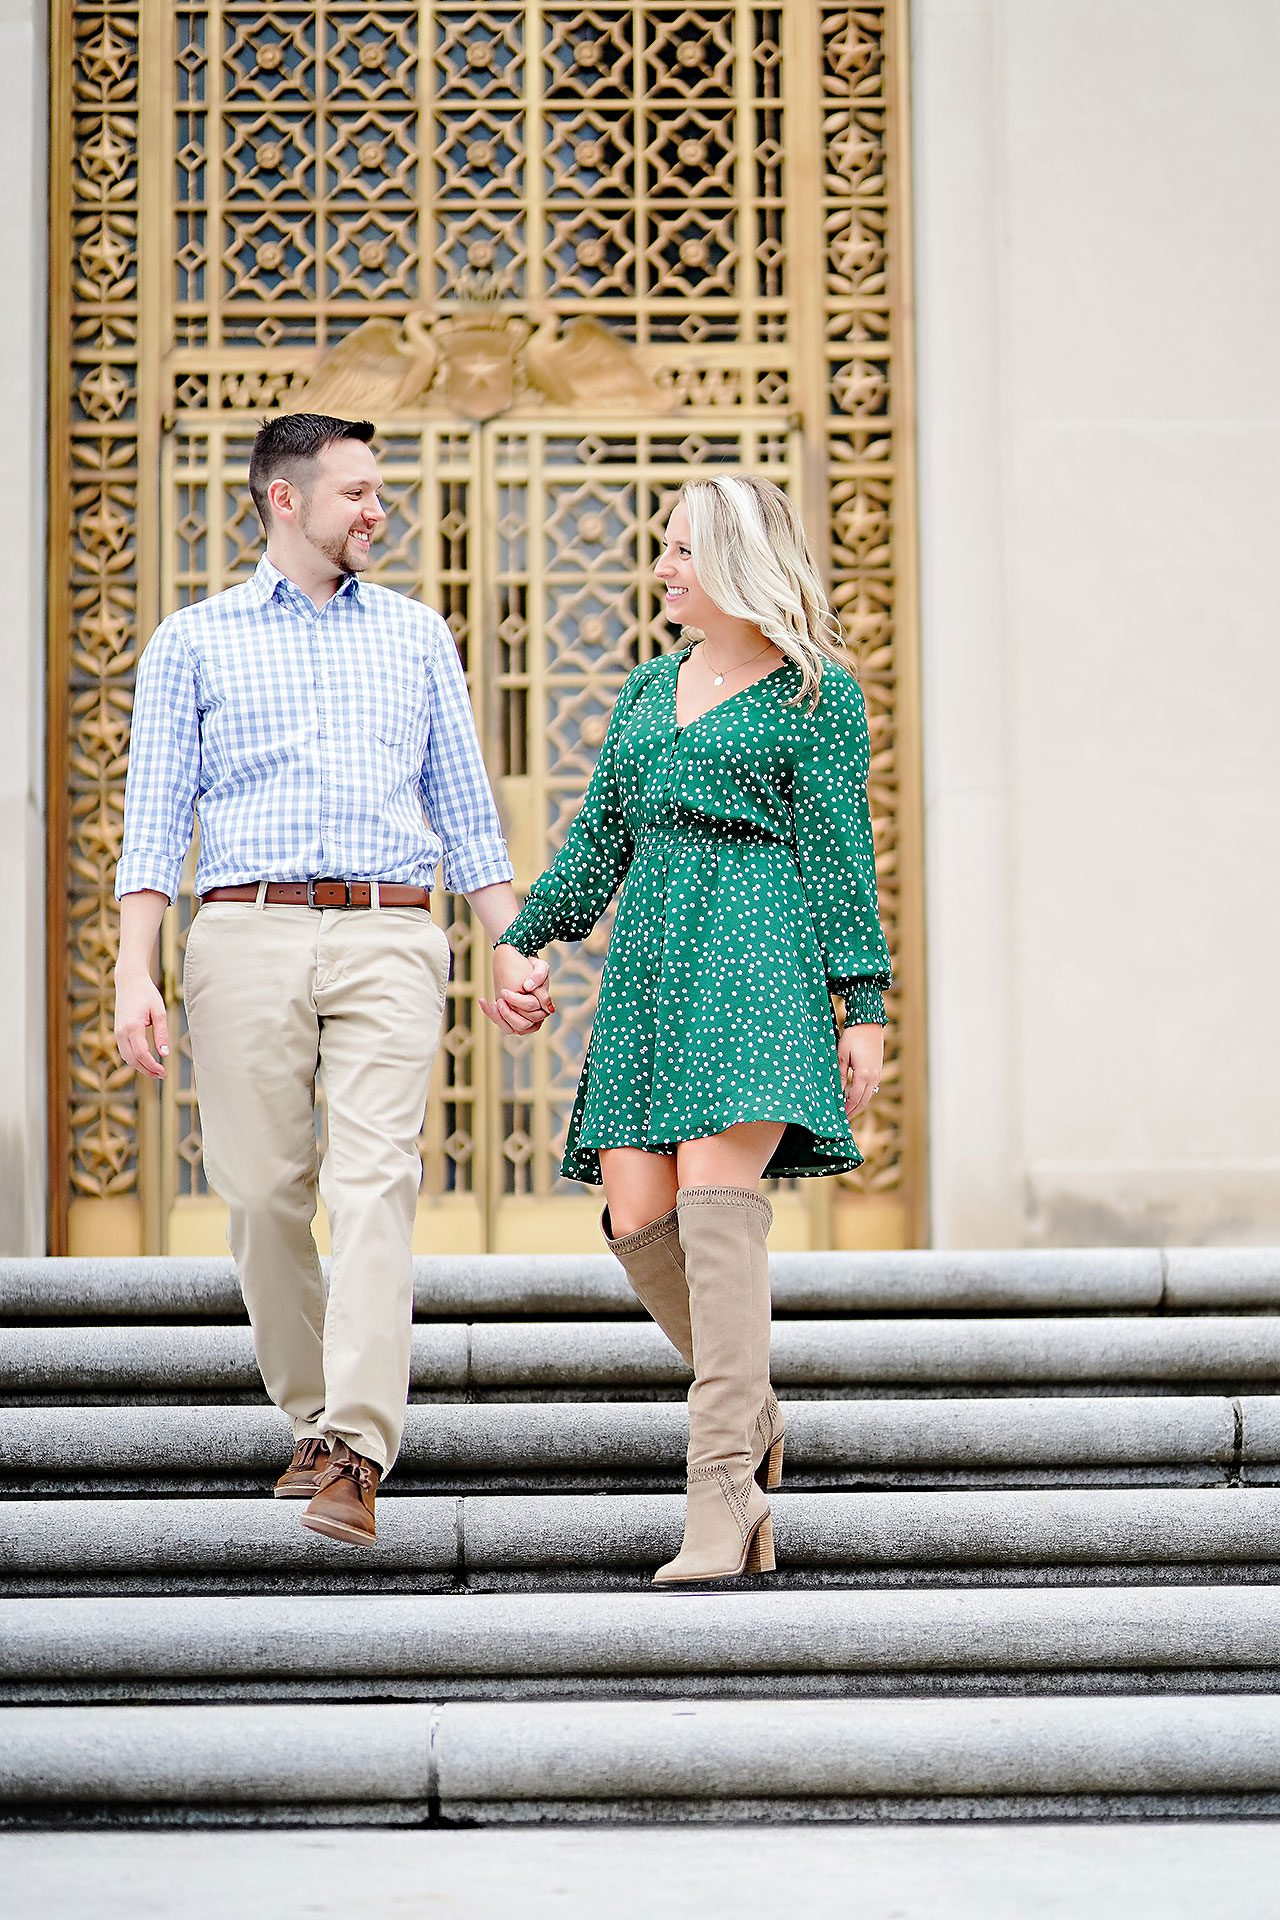 Kristen Jonny Indianapolis Downtown Engagement Session 050